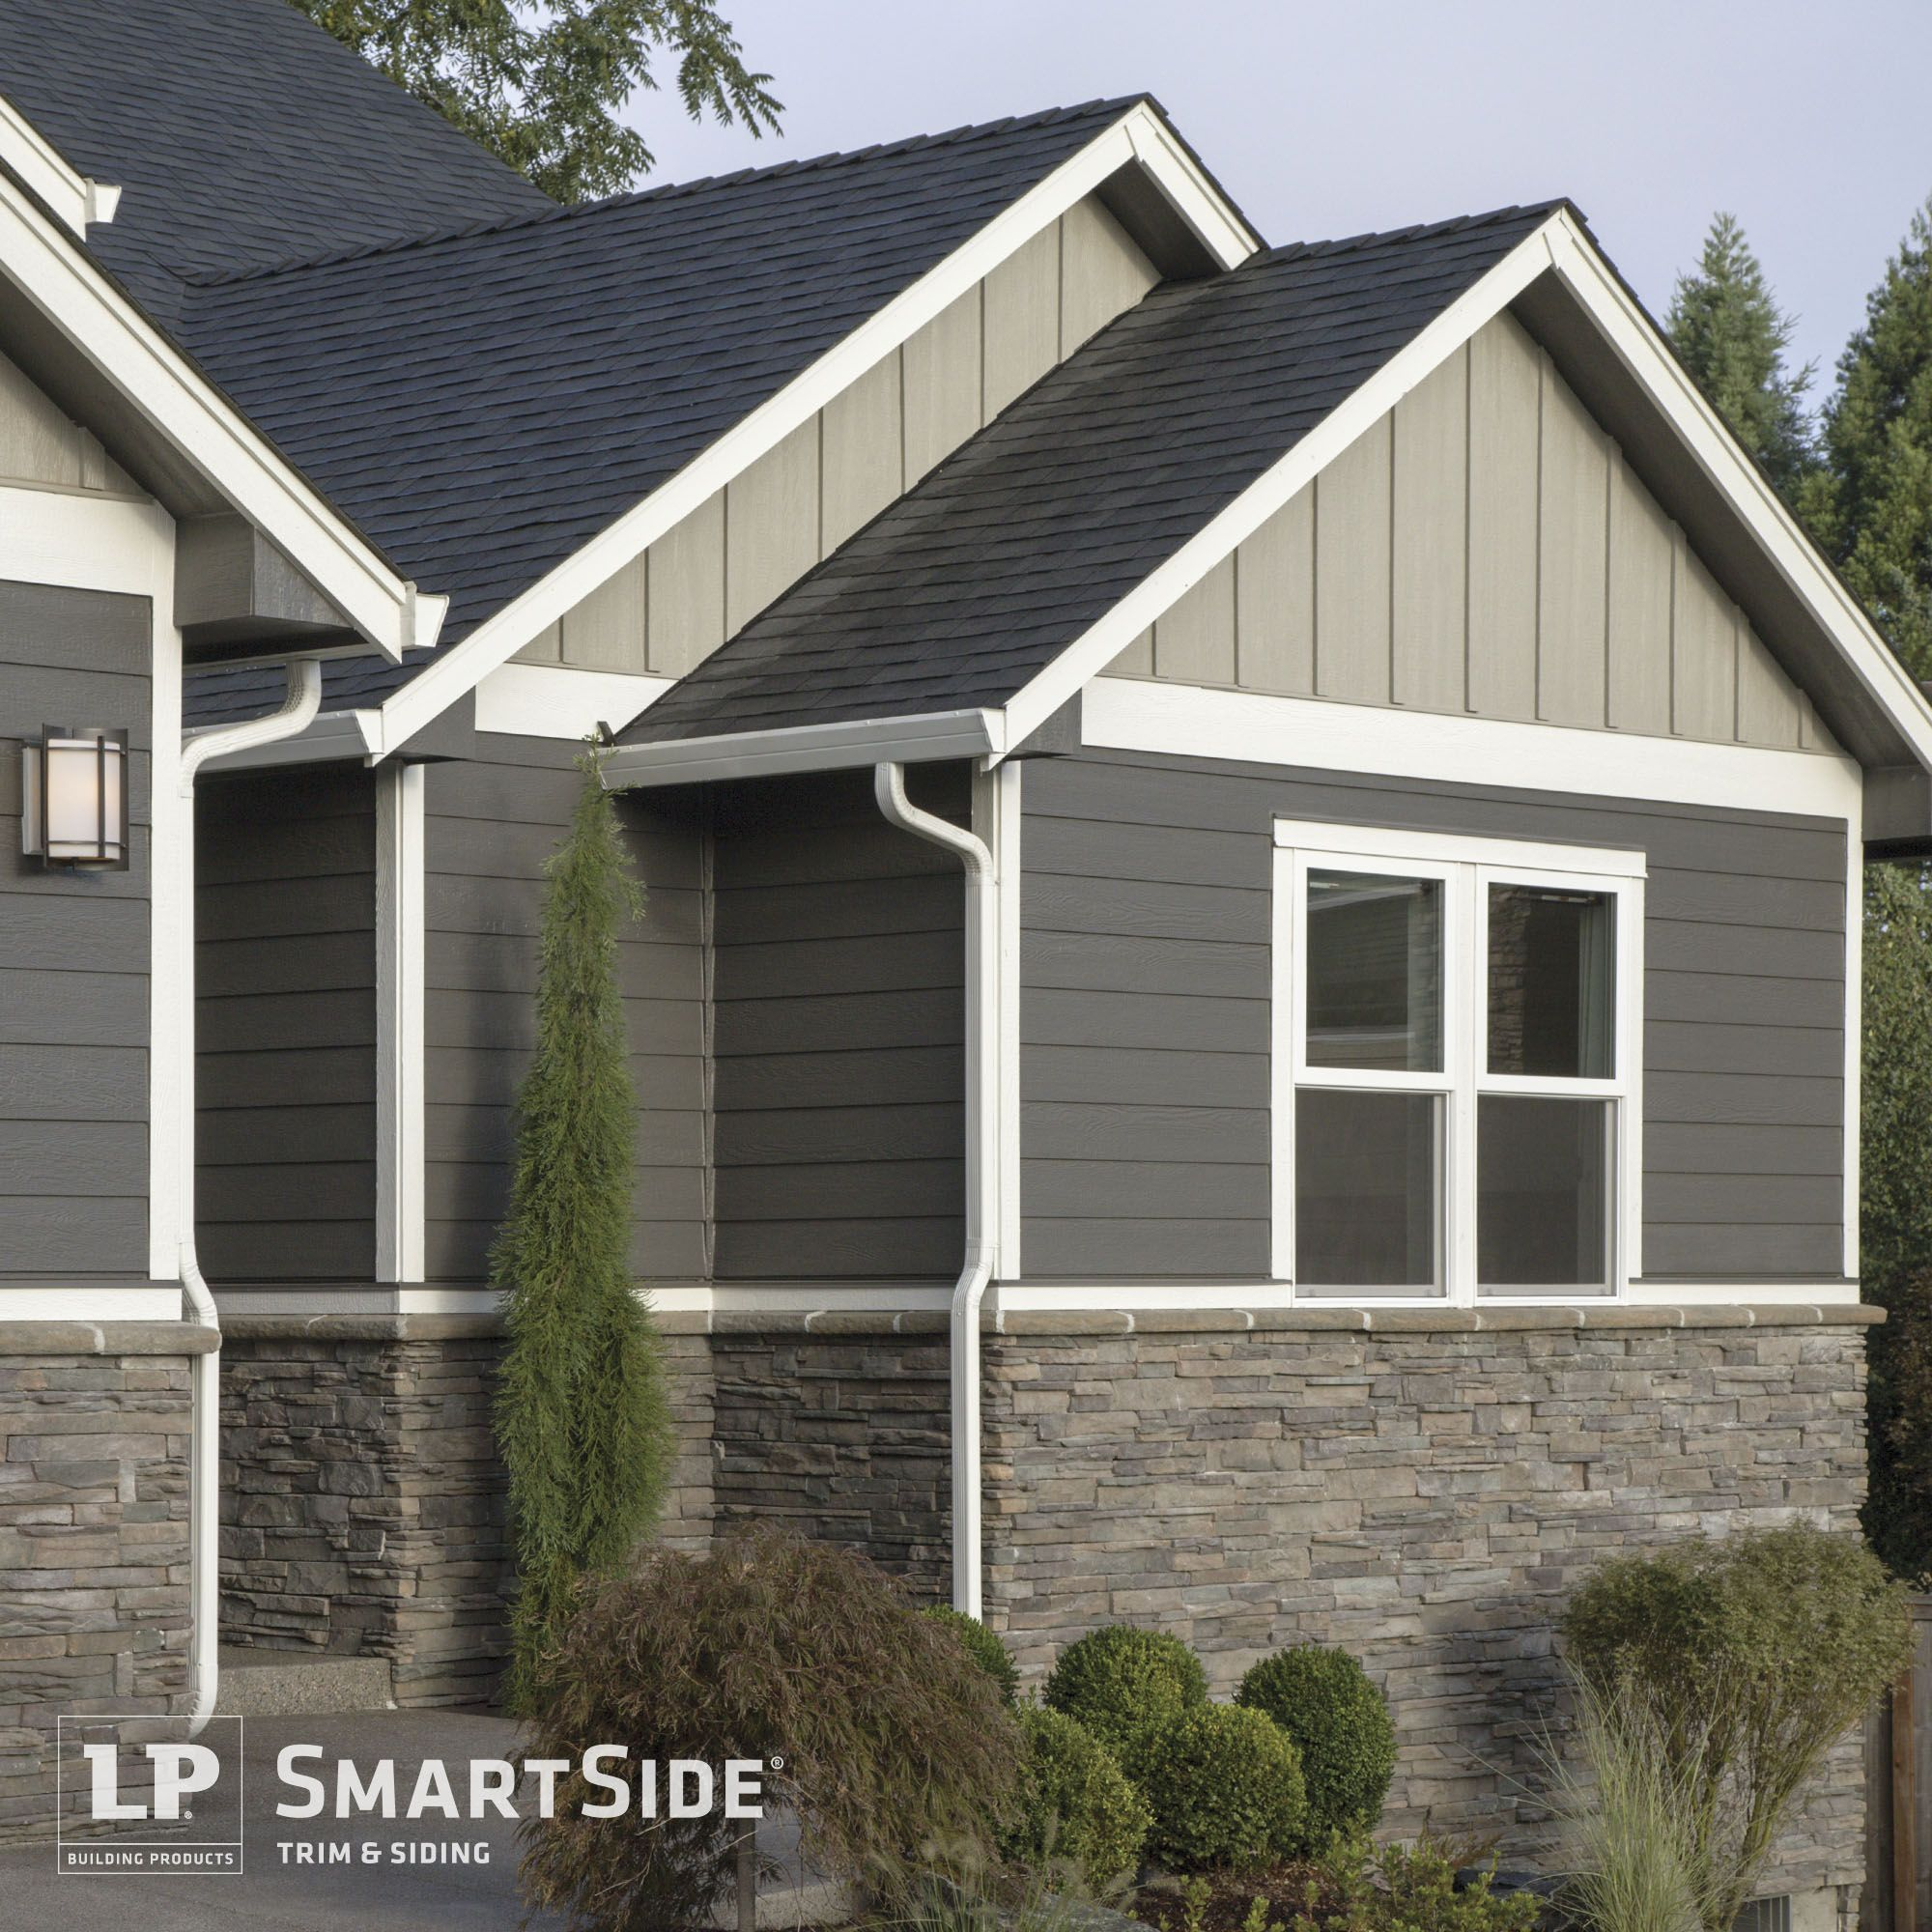 Rock Siding Ideas: LP SmartSide Trim, Lap And Panel Siding Pair With